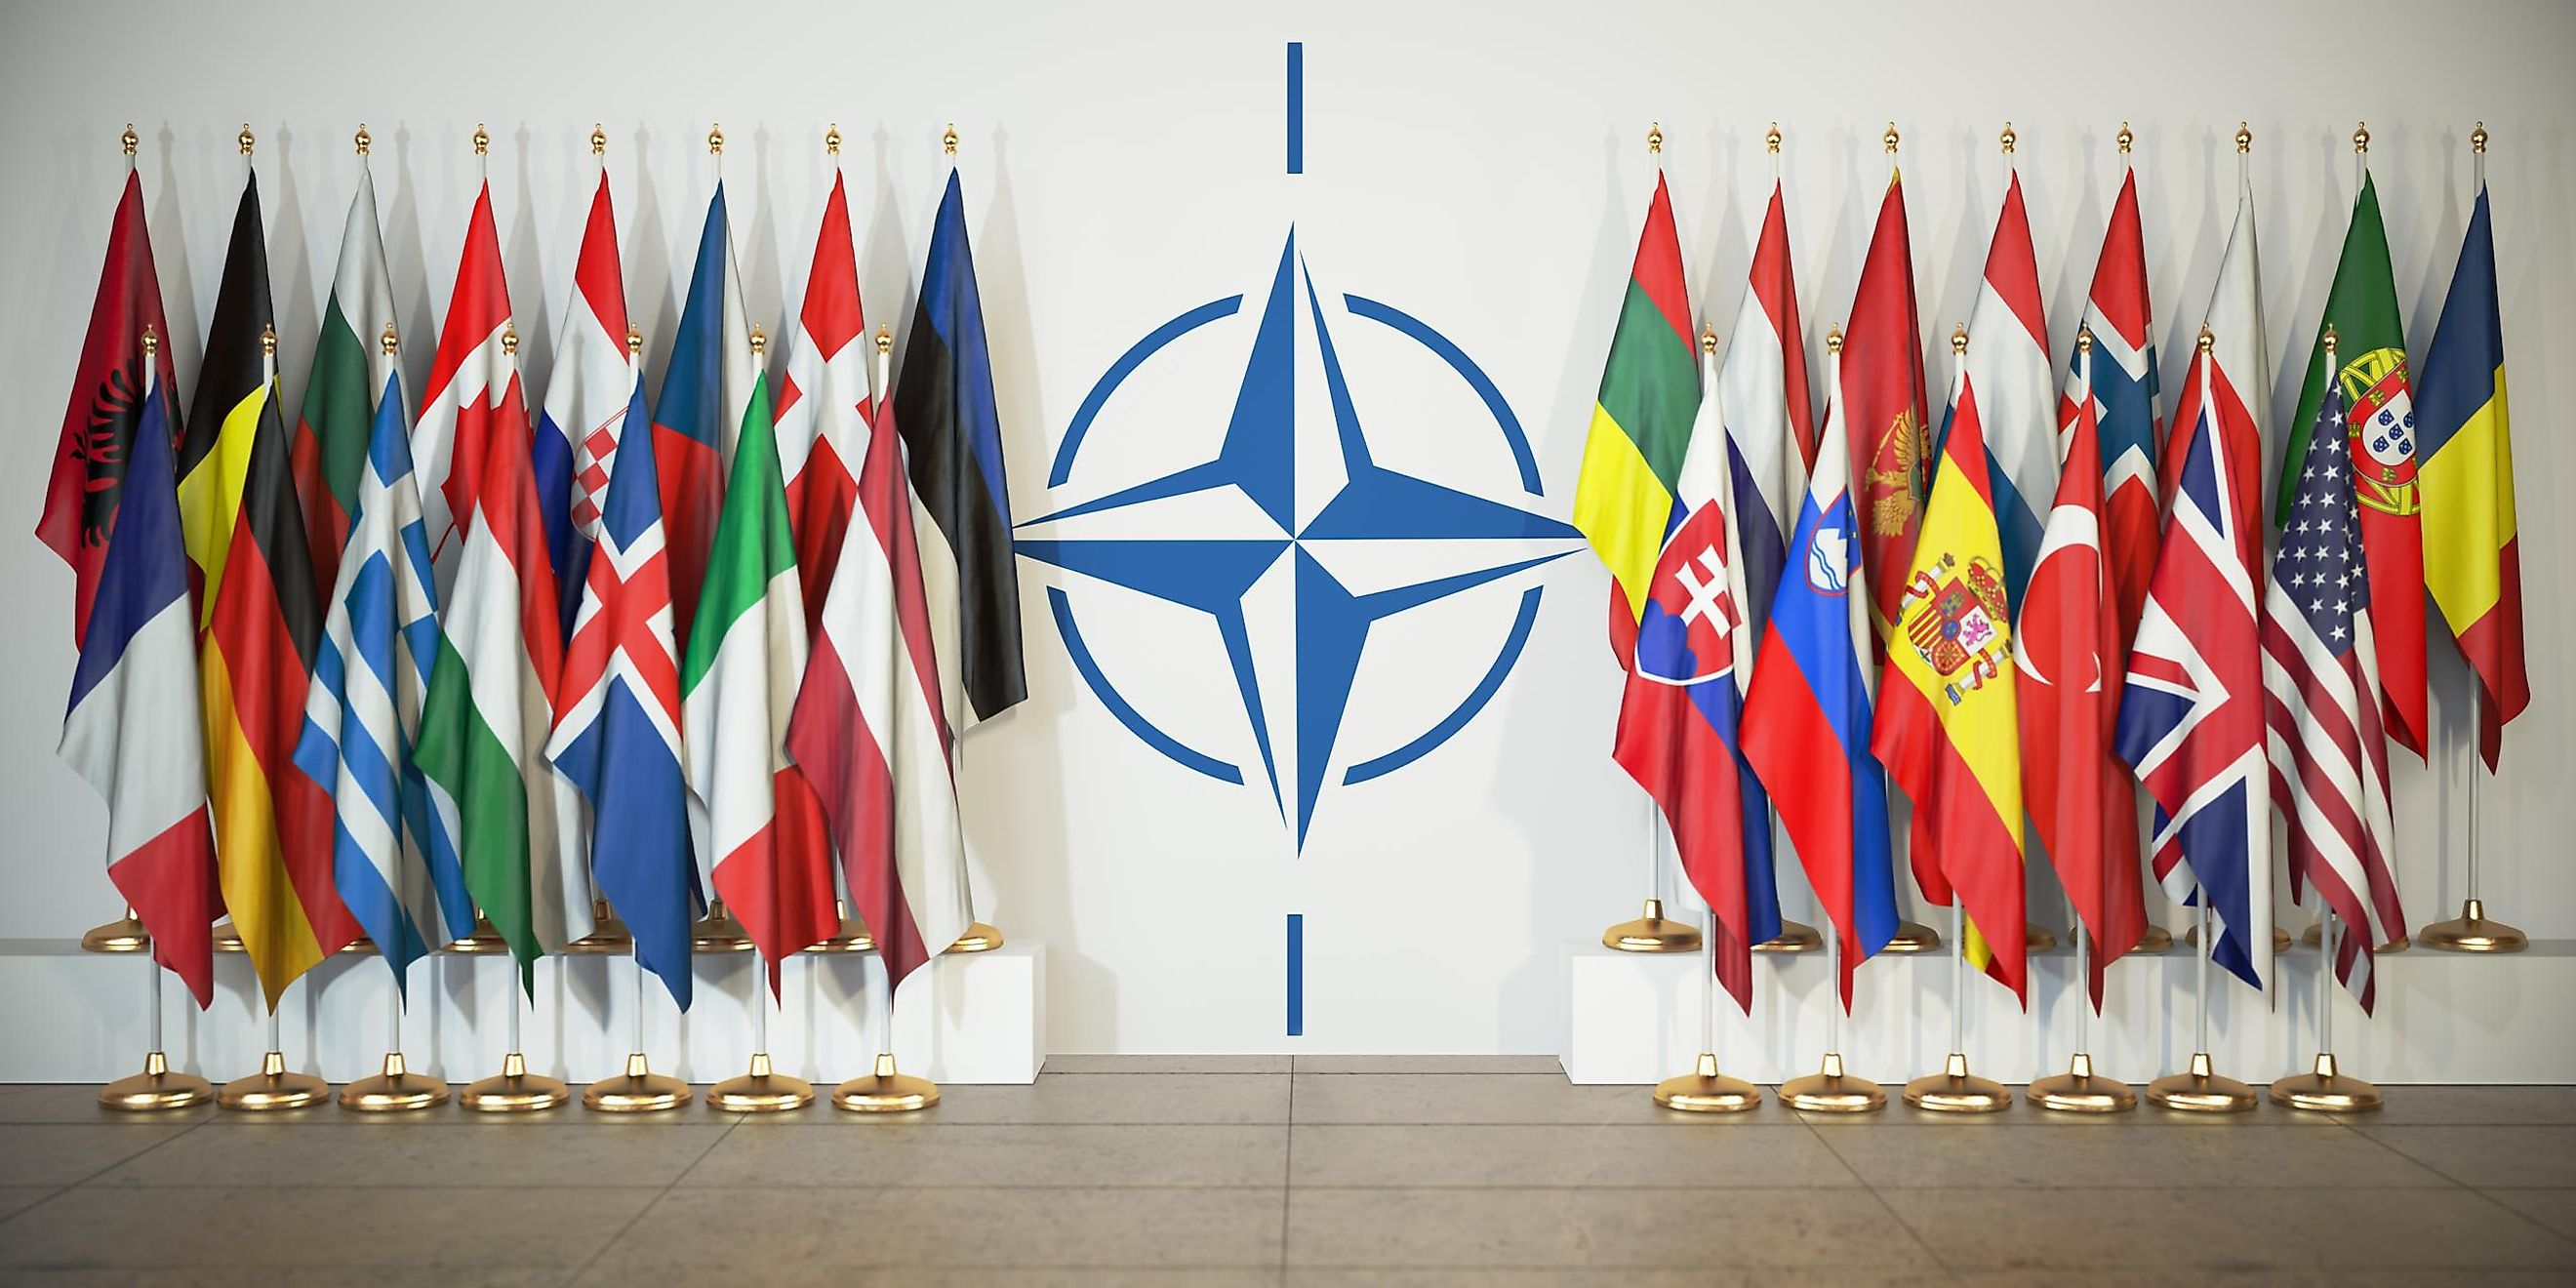 The NATO insignia with its member countries' flags. Image credit: Maxx-Studio/Shutterstock